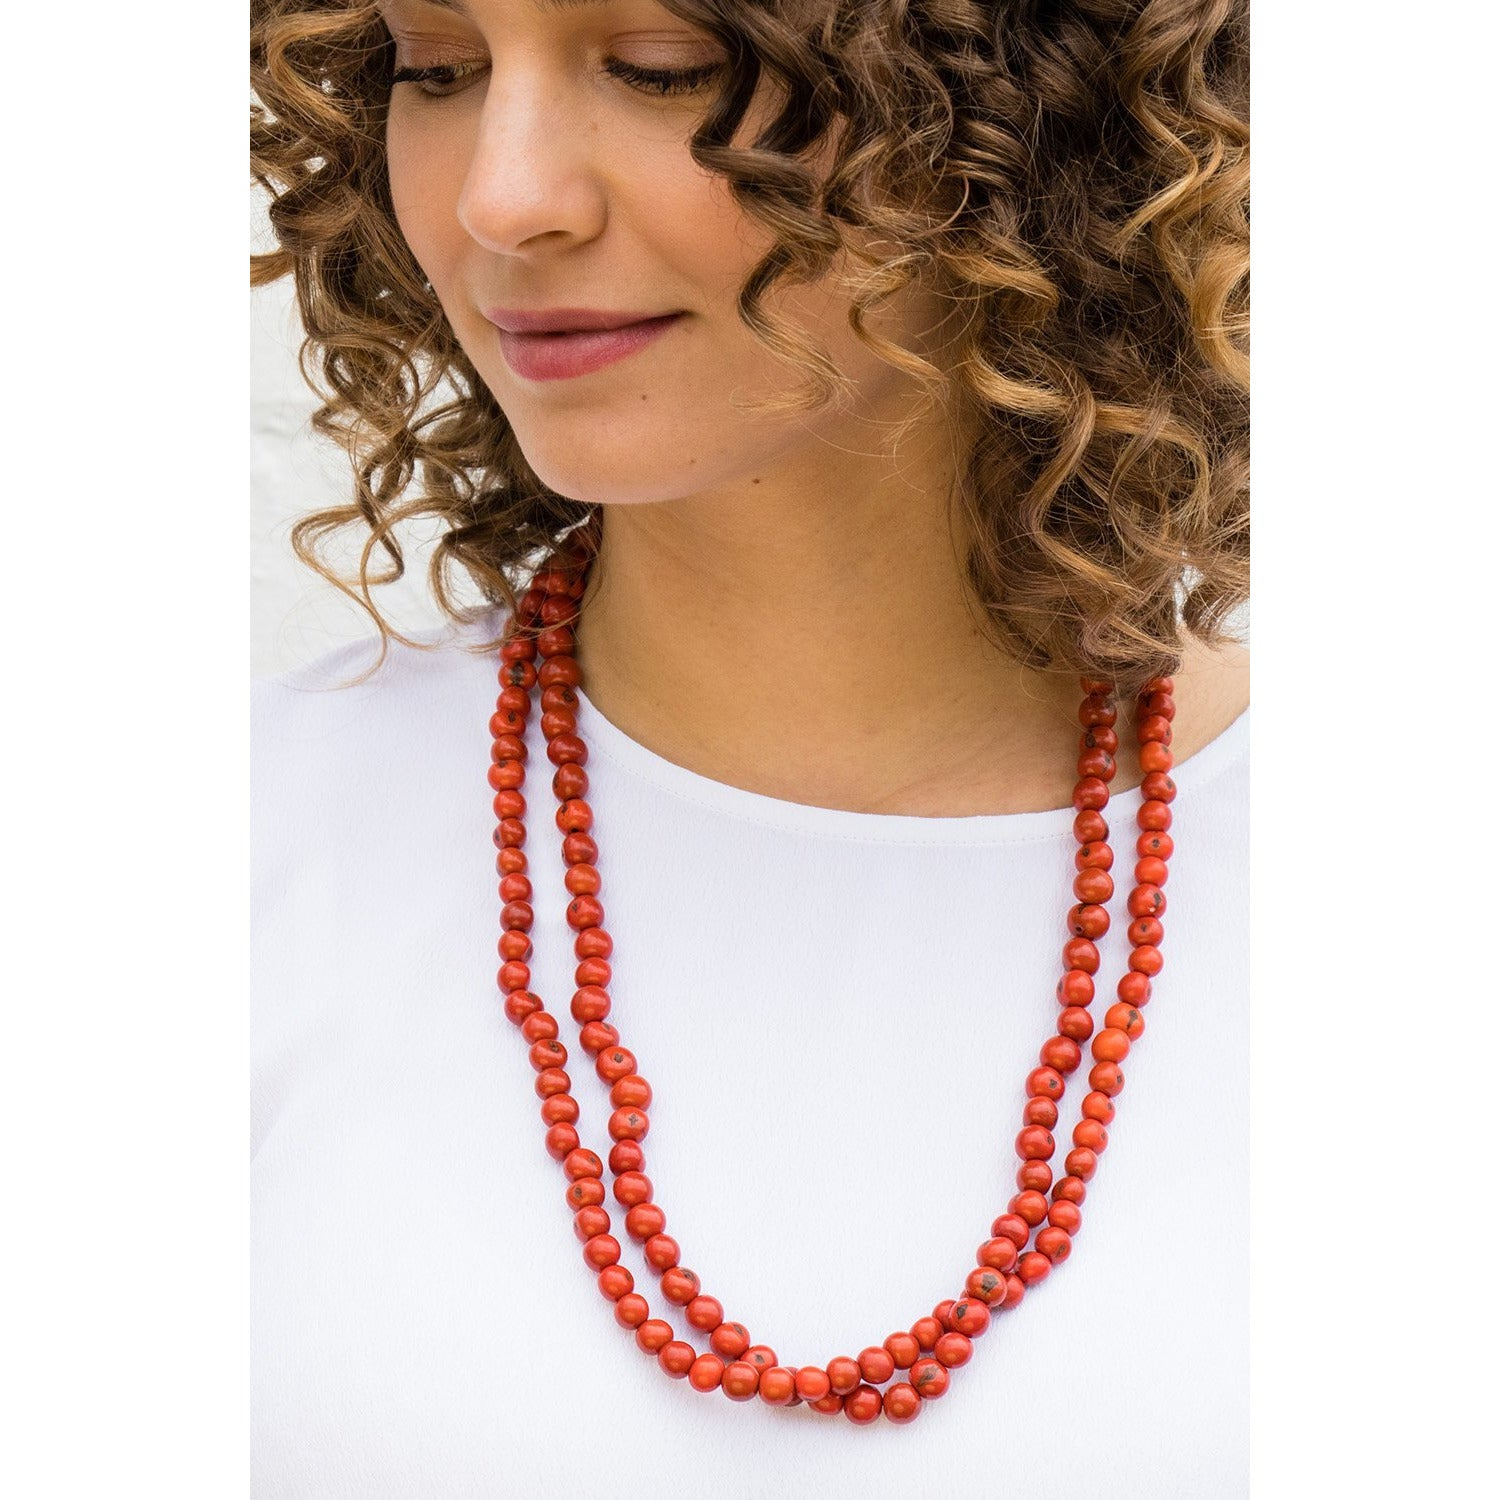 Acai Bead Necklaces by Melko in Tomato Red